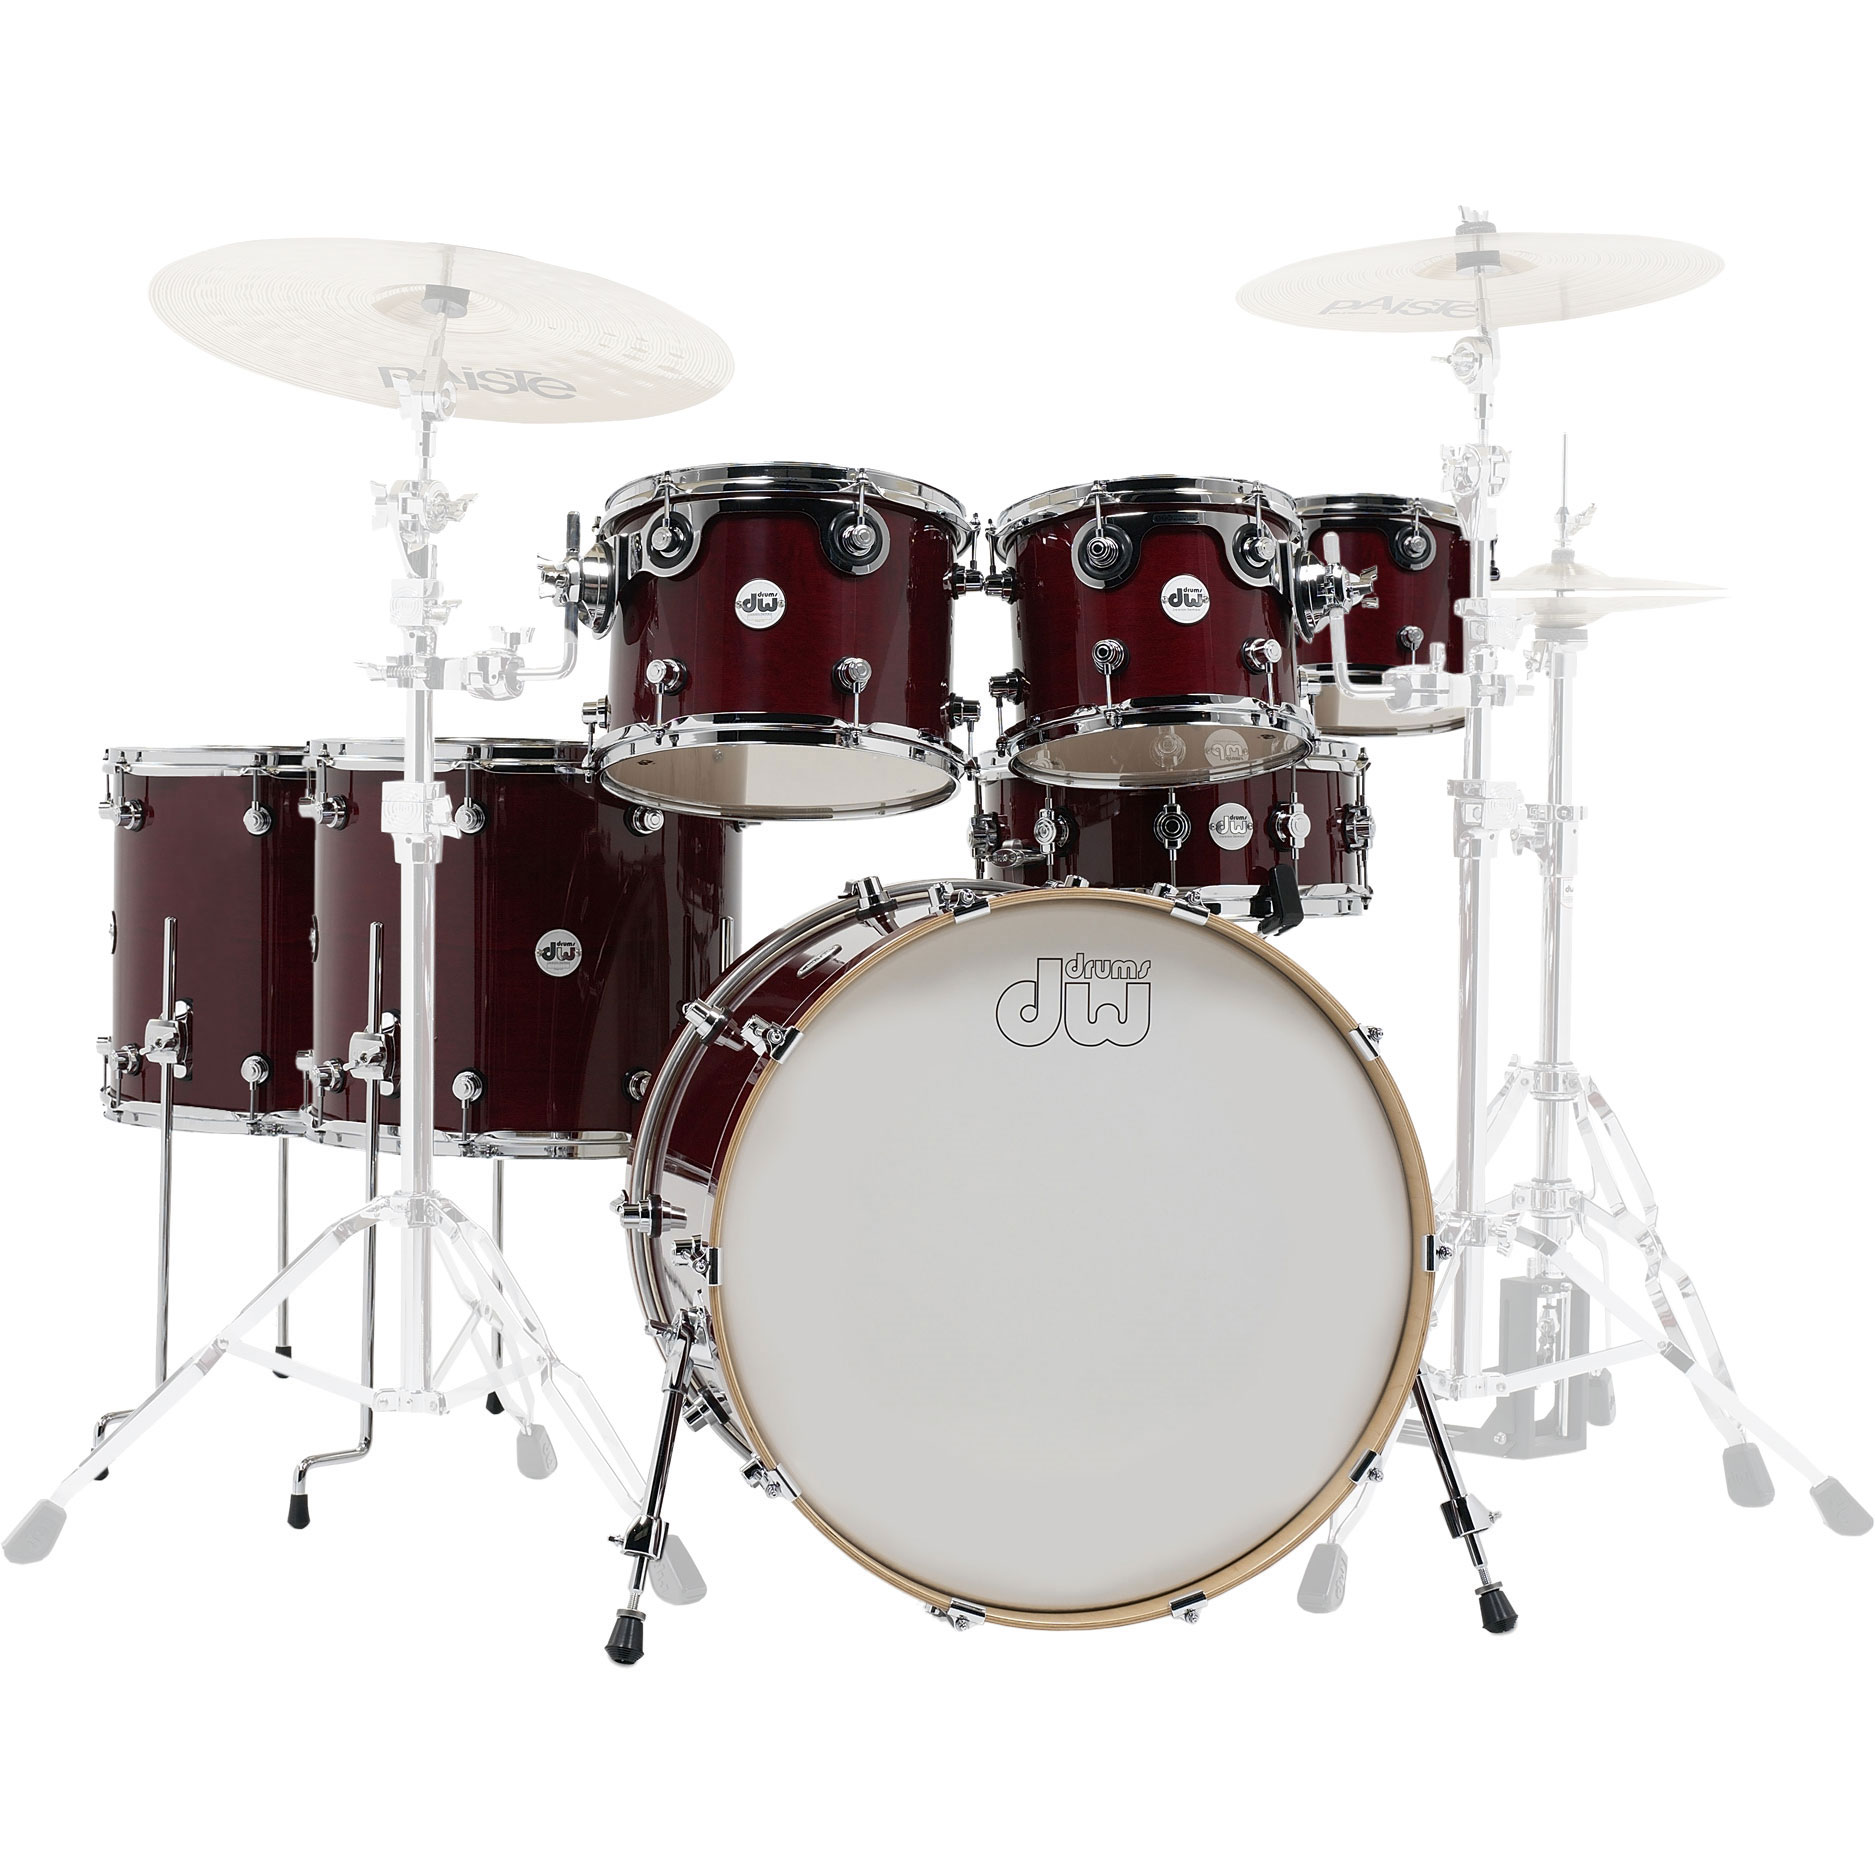 "DW Design 7-Piece Drum Set Shell Pack (22"" Bass, 8/10/12/14/16"" Toms, 14"" Snare) in Cherry Stain Lacquer"